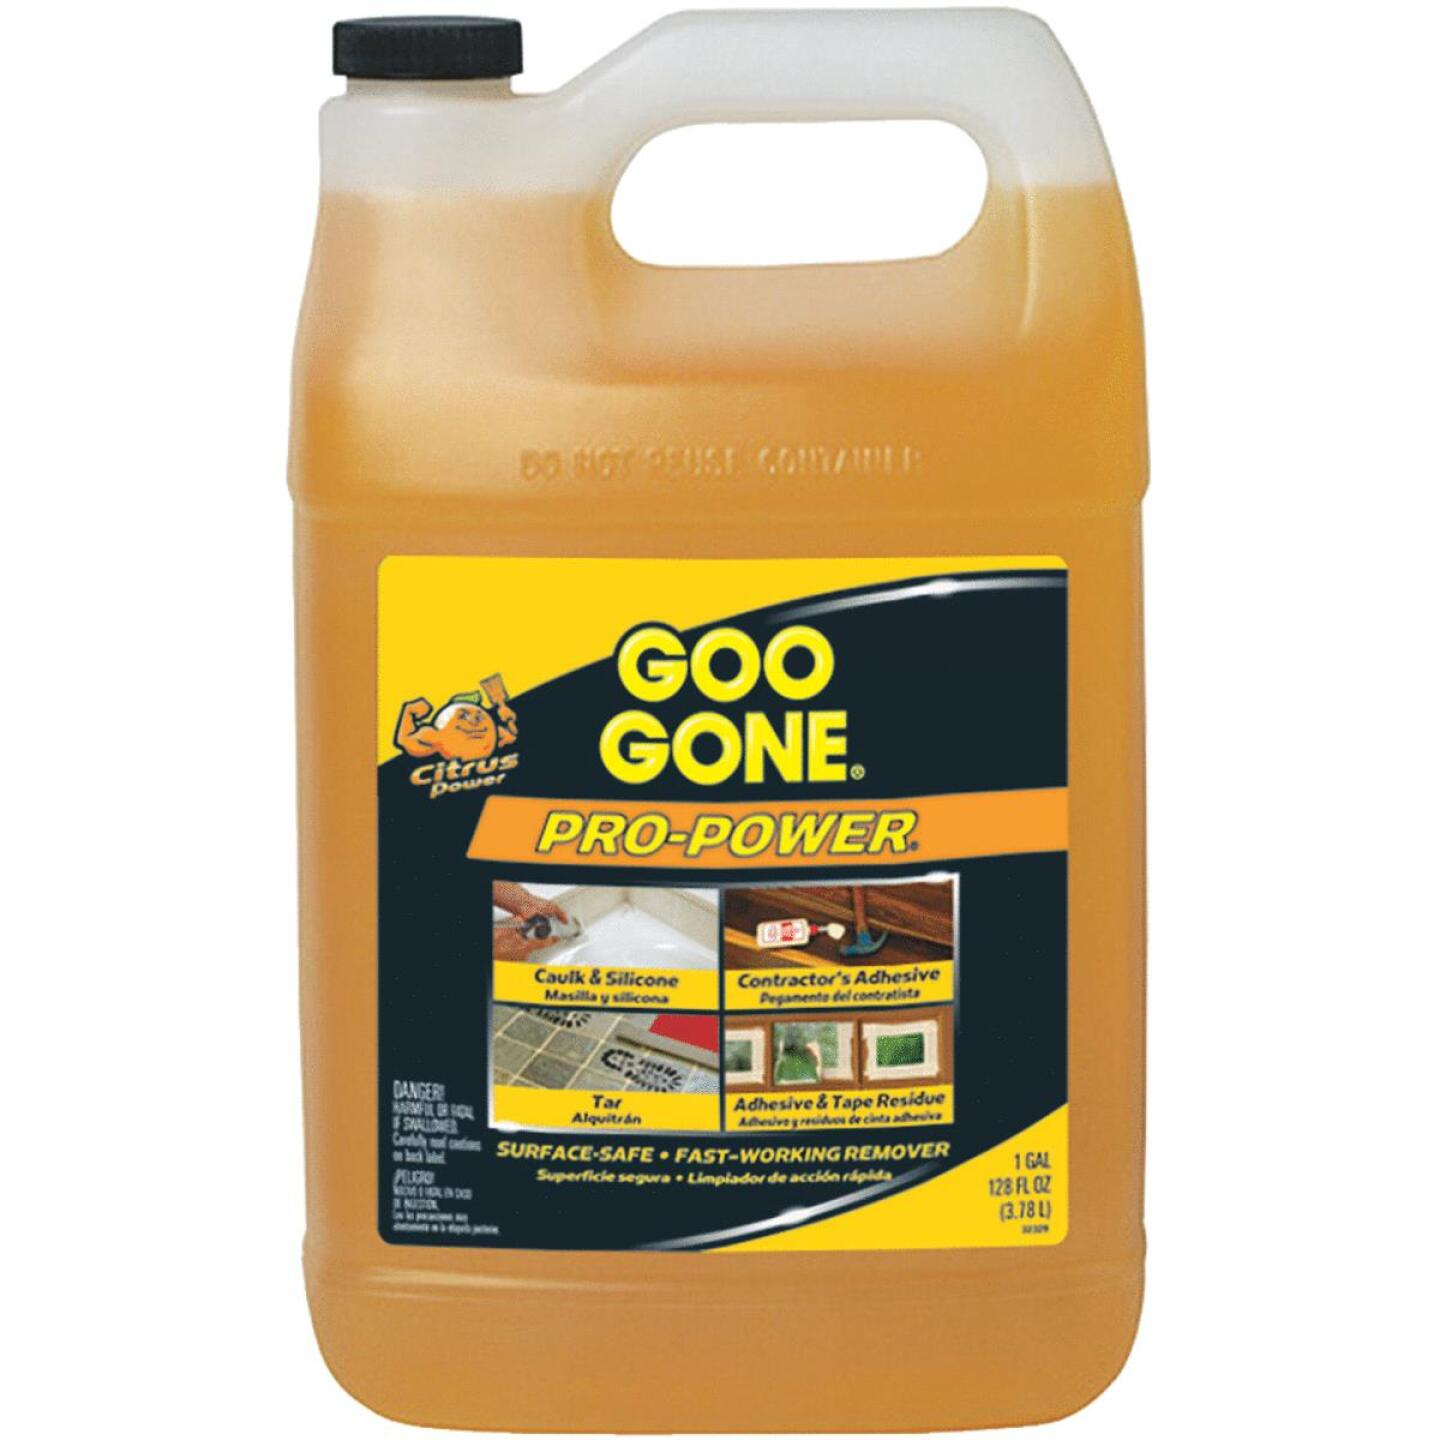 Goo Gone 1 Gal. Pro-Power Adhesive Remover Image 56